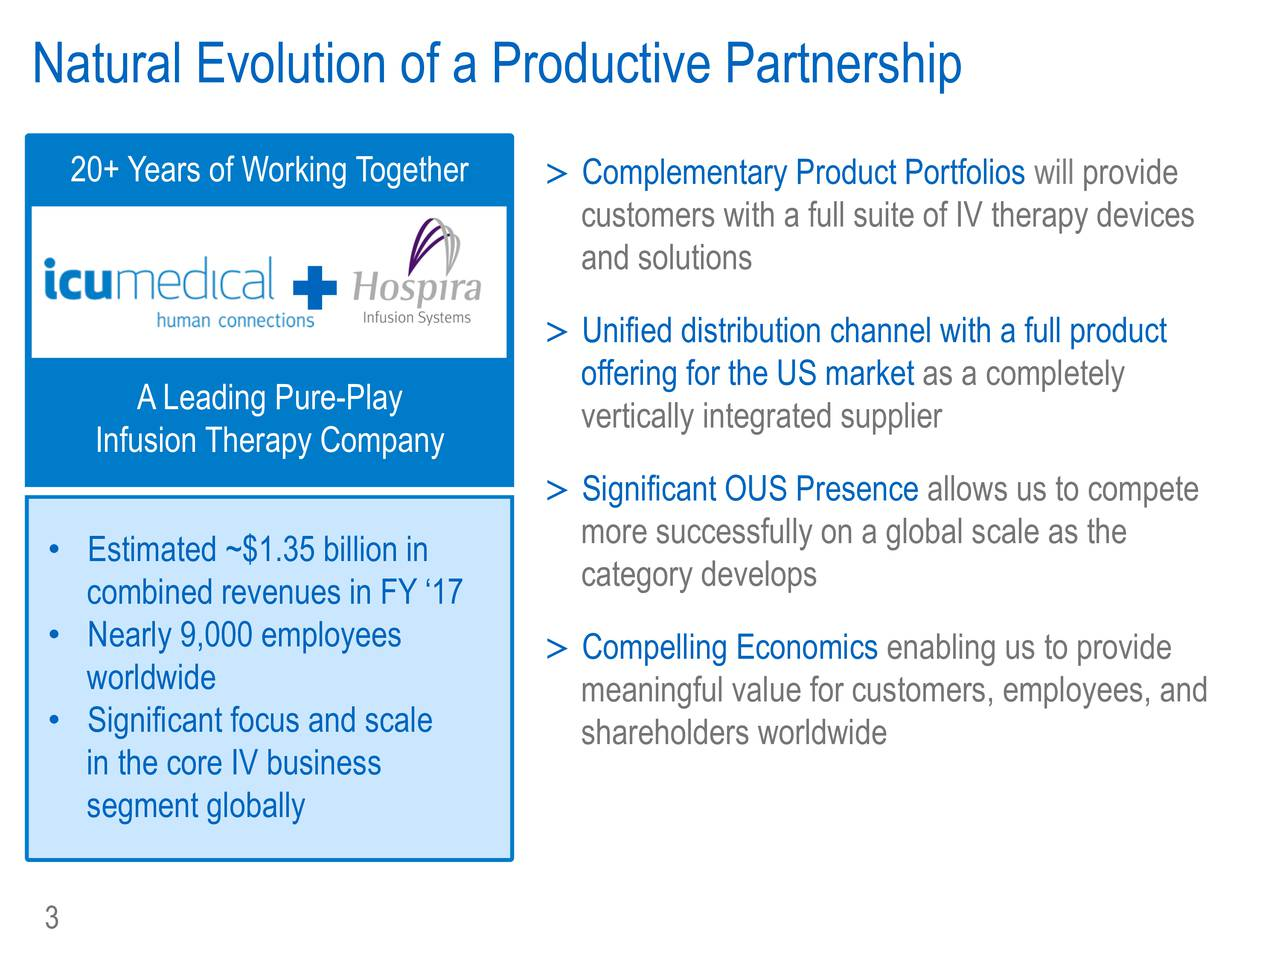 20+ Years of Working Together >Complementary Product Portfolios will provide customers with a full suite of IV therapy devices and solutions + >Unified distribution channel with a full product offering for the US market as a completely ALeading Pure-Play vertically integrated supplier Infusion Therapy Company >Significant OUS Presence allows us to compete more successfully on a global scale as the Estimated ~$1.35 billion in category develops combined revenues in FY 17 Nearly 9,000 employees >Compelling Economics enabling us to provide worldwide meaningful value for customers, employees, and Significant focus and scale shareholders worldwide in the core IV business segment globally 3